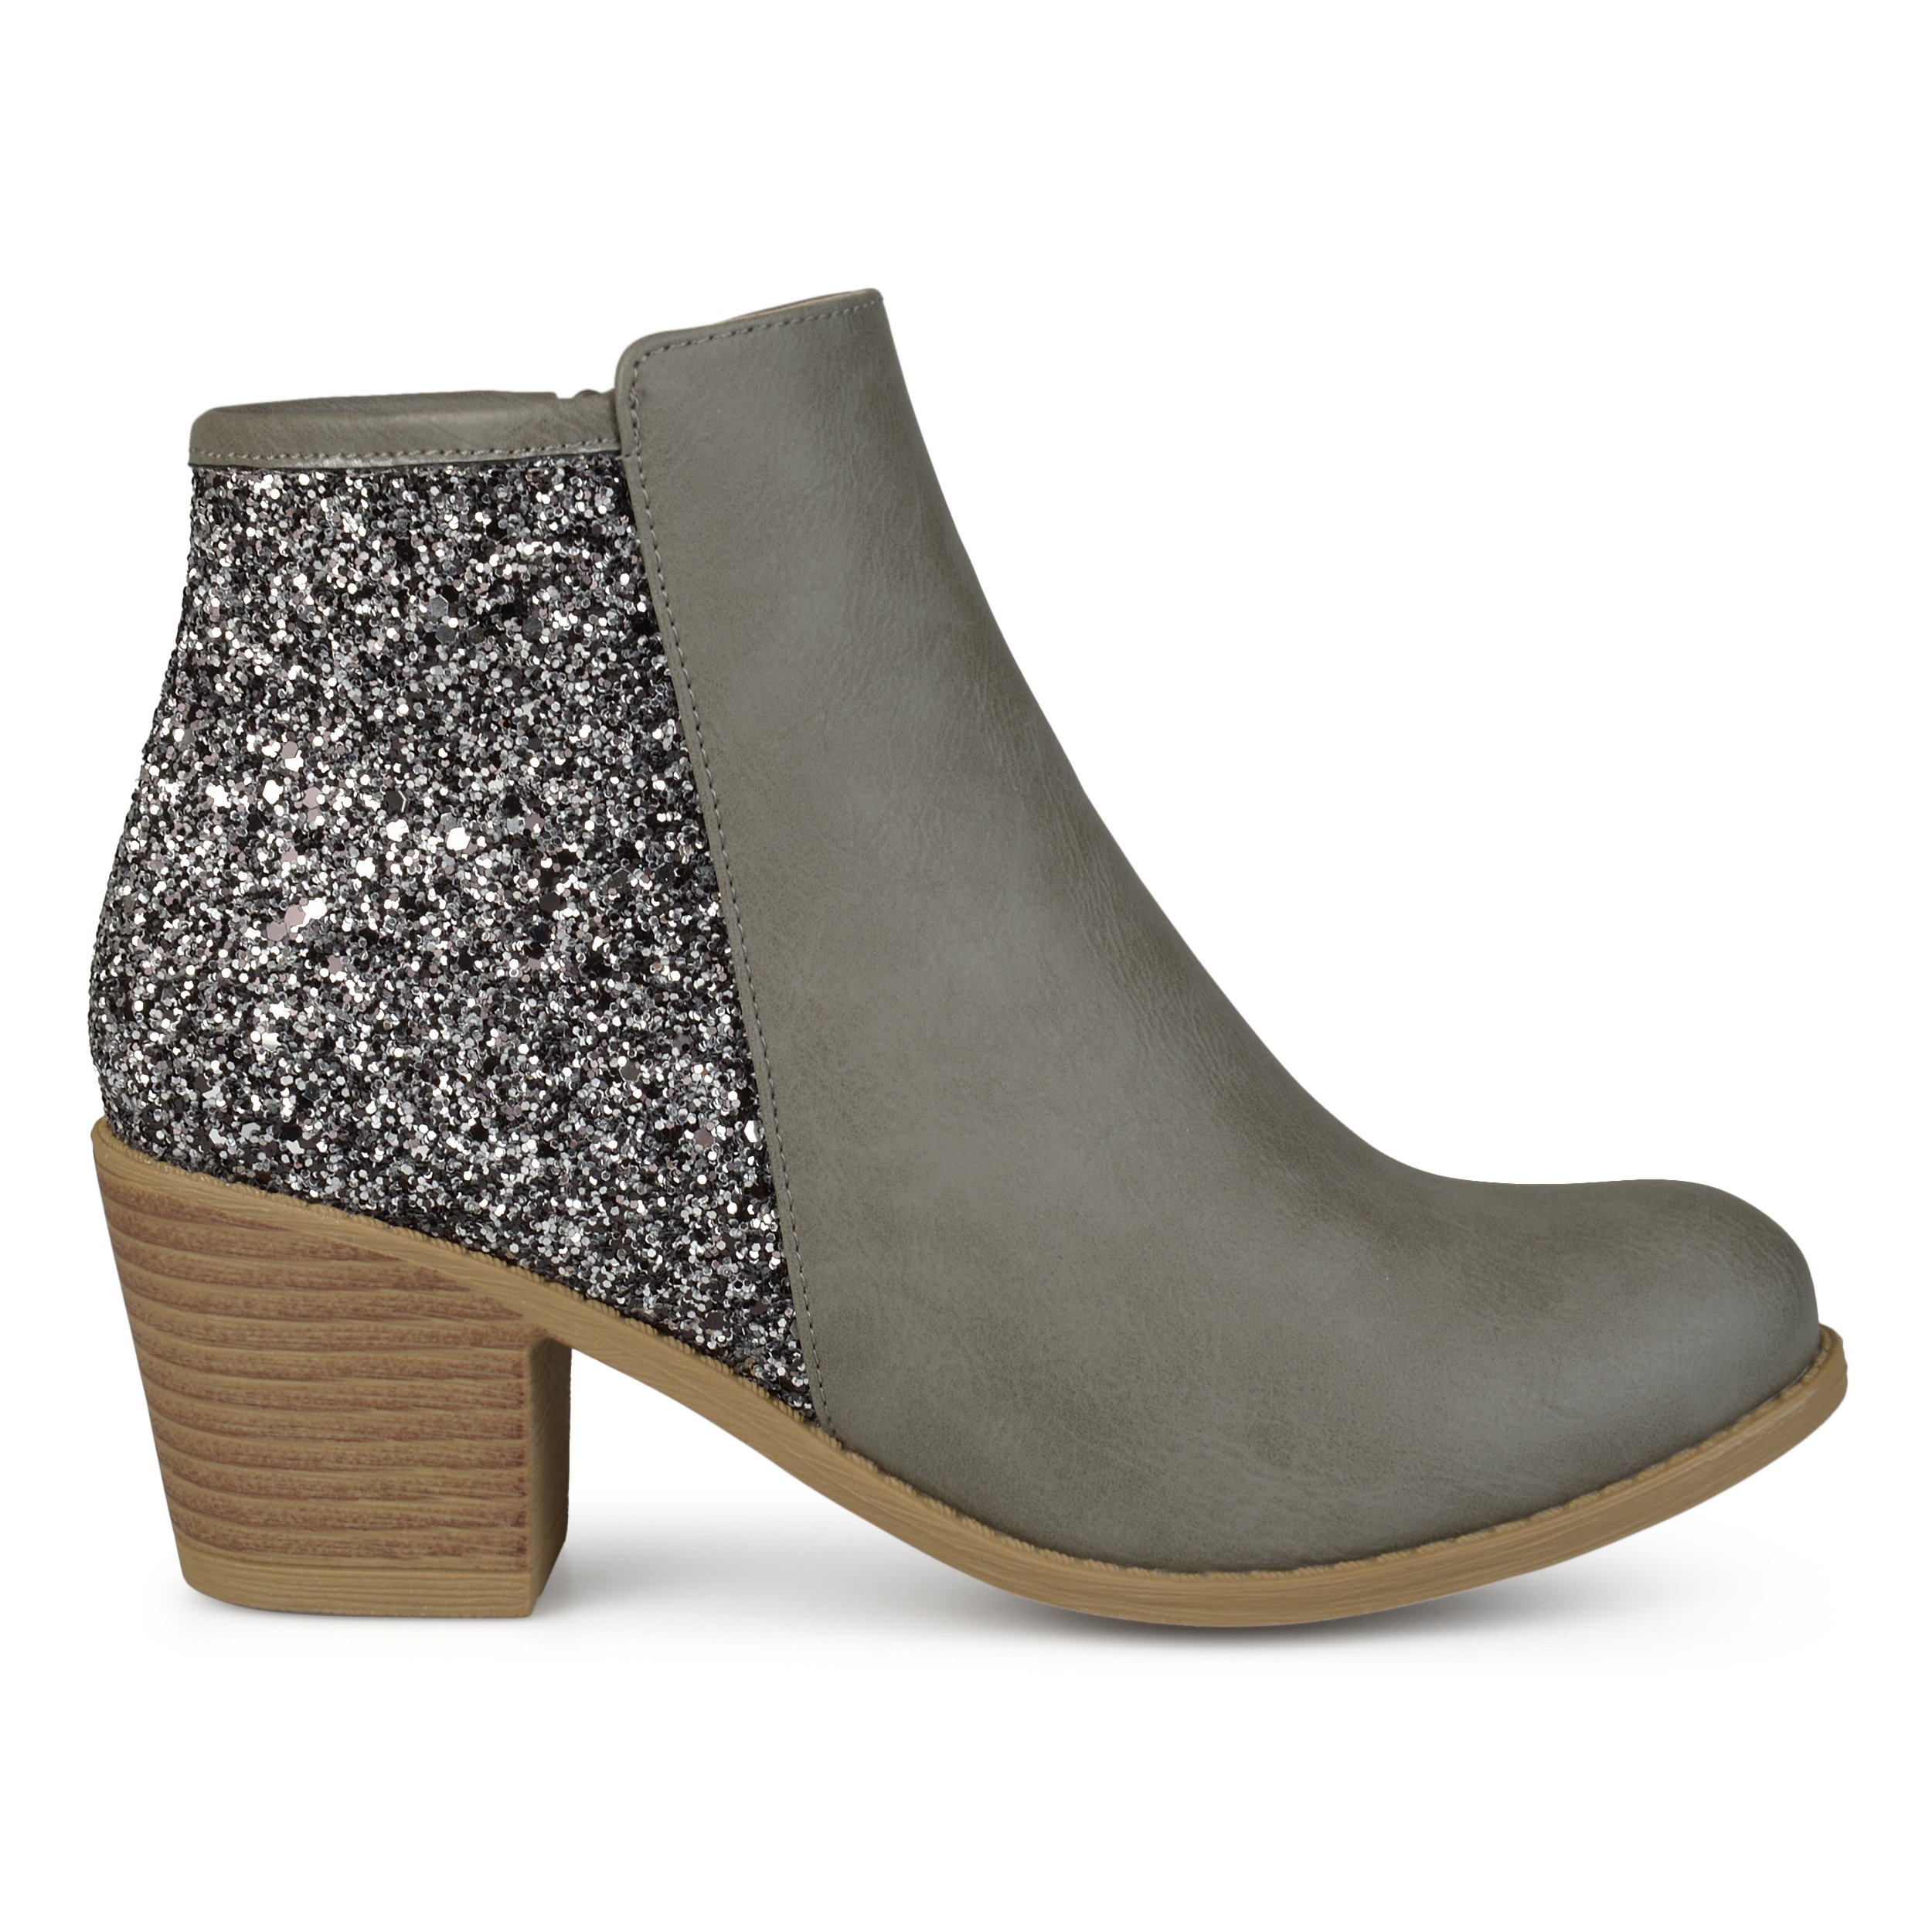 Brinley Co. Womens Faux Leather Wood Stacked Heel Glitter Booties Grey, 8 Regular US